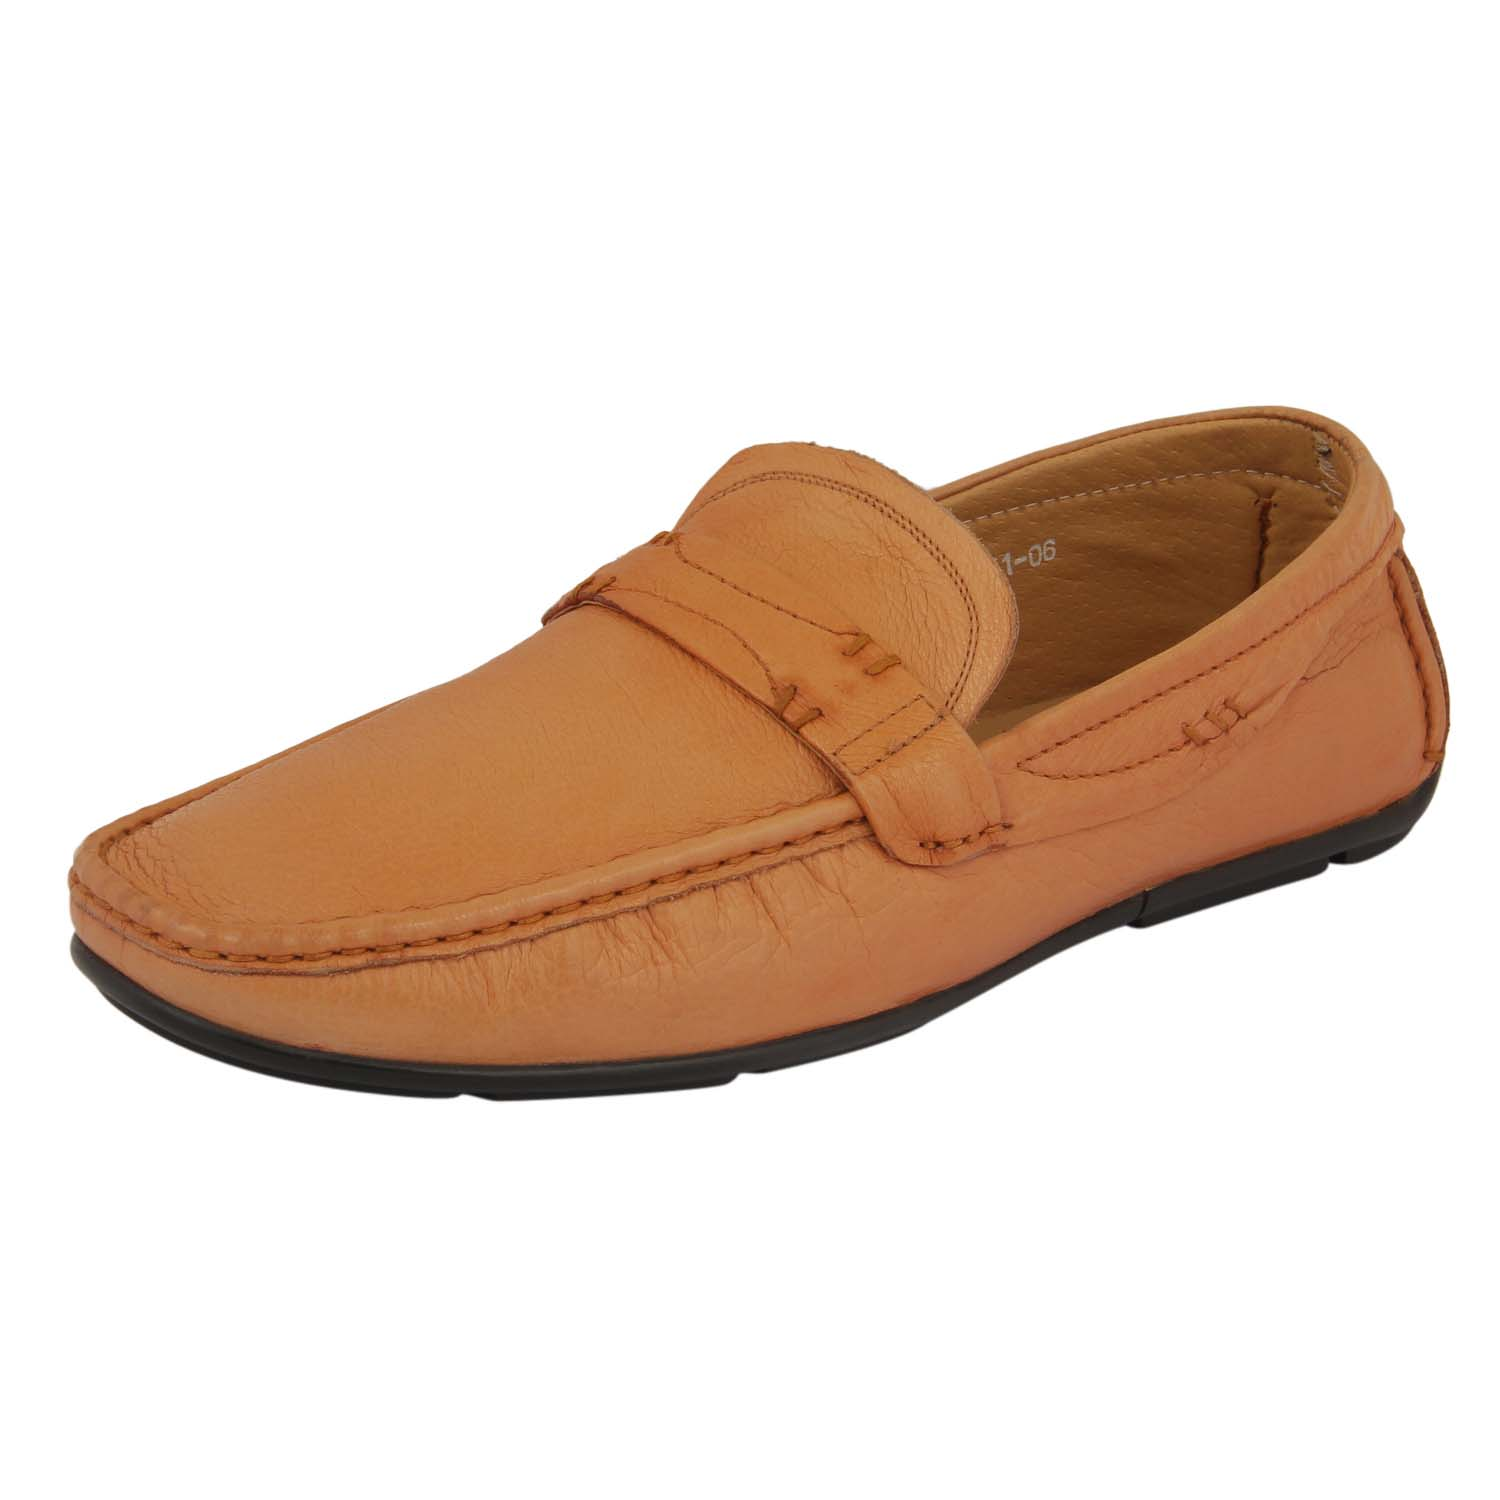 Tan Slip-On Loafer Shoes